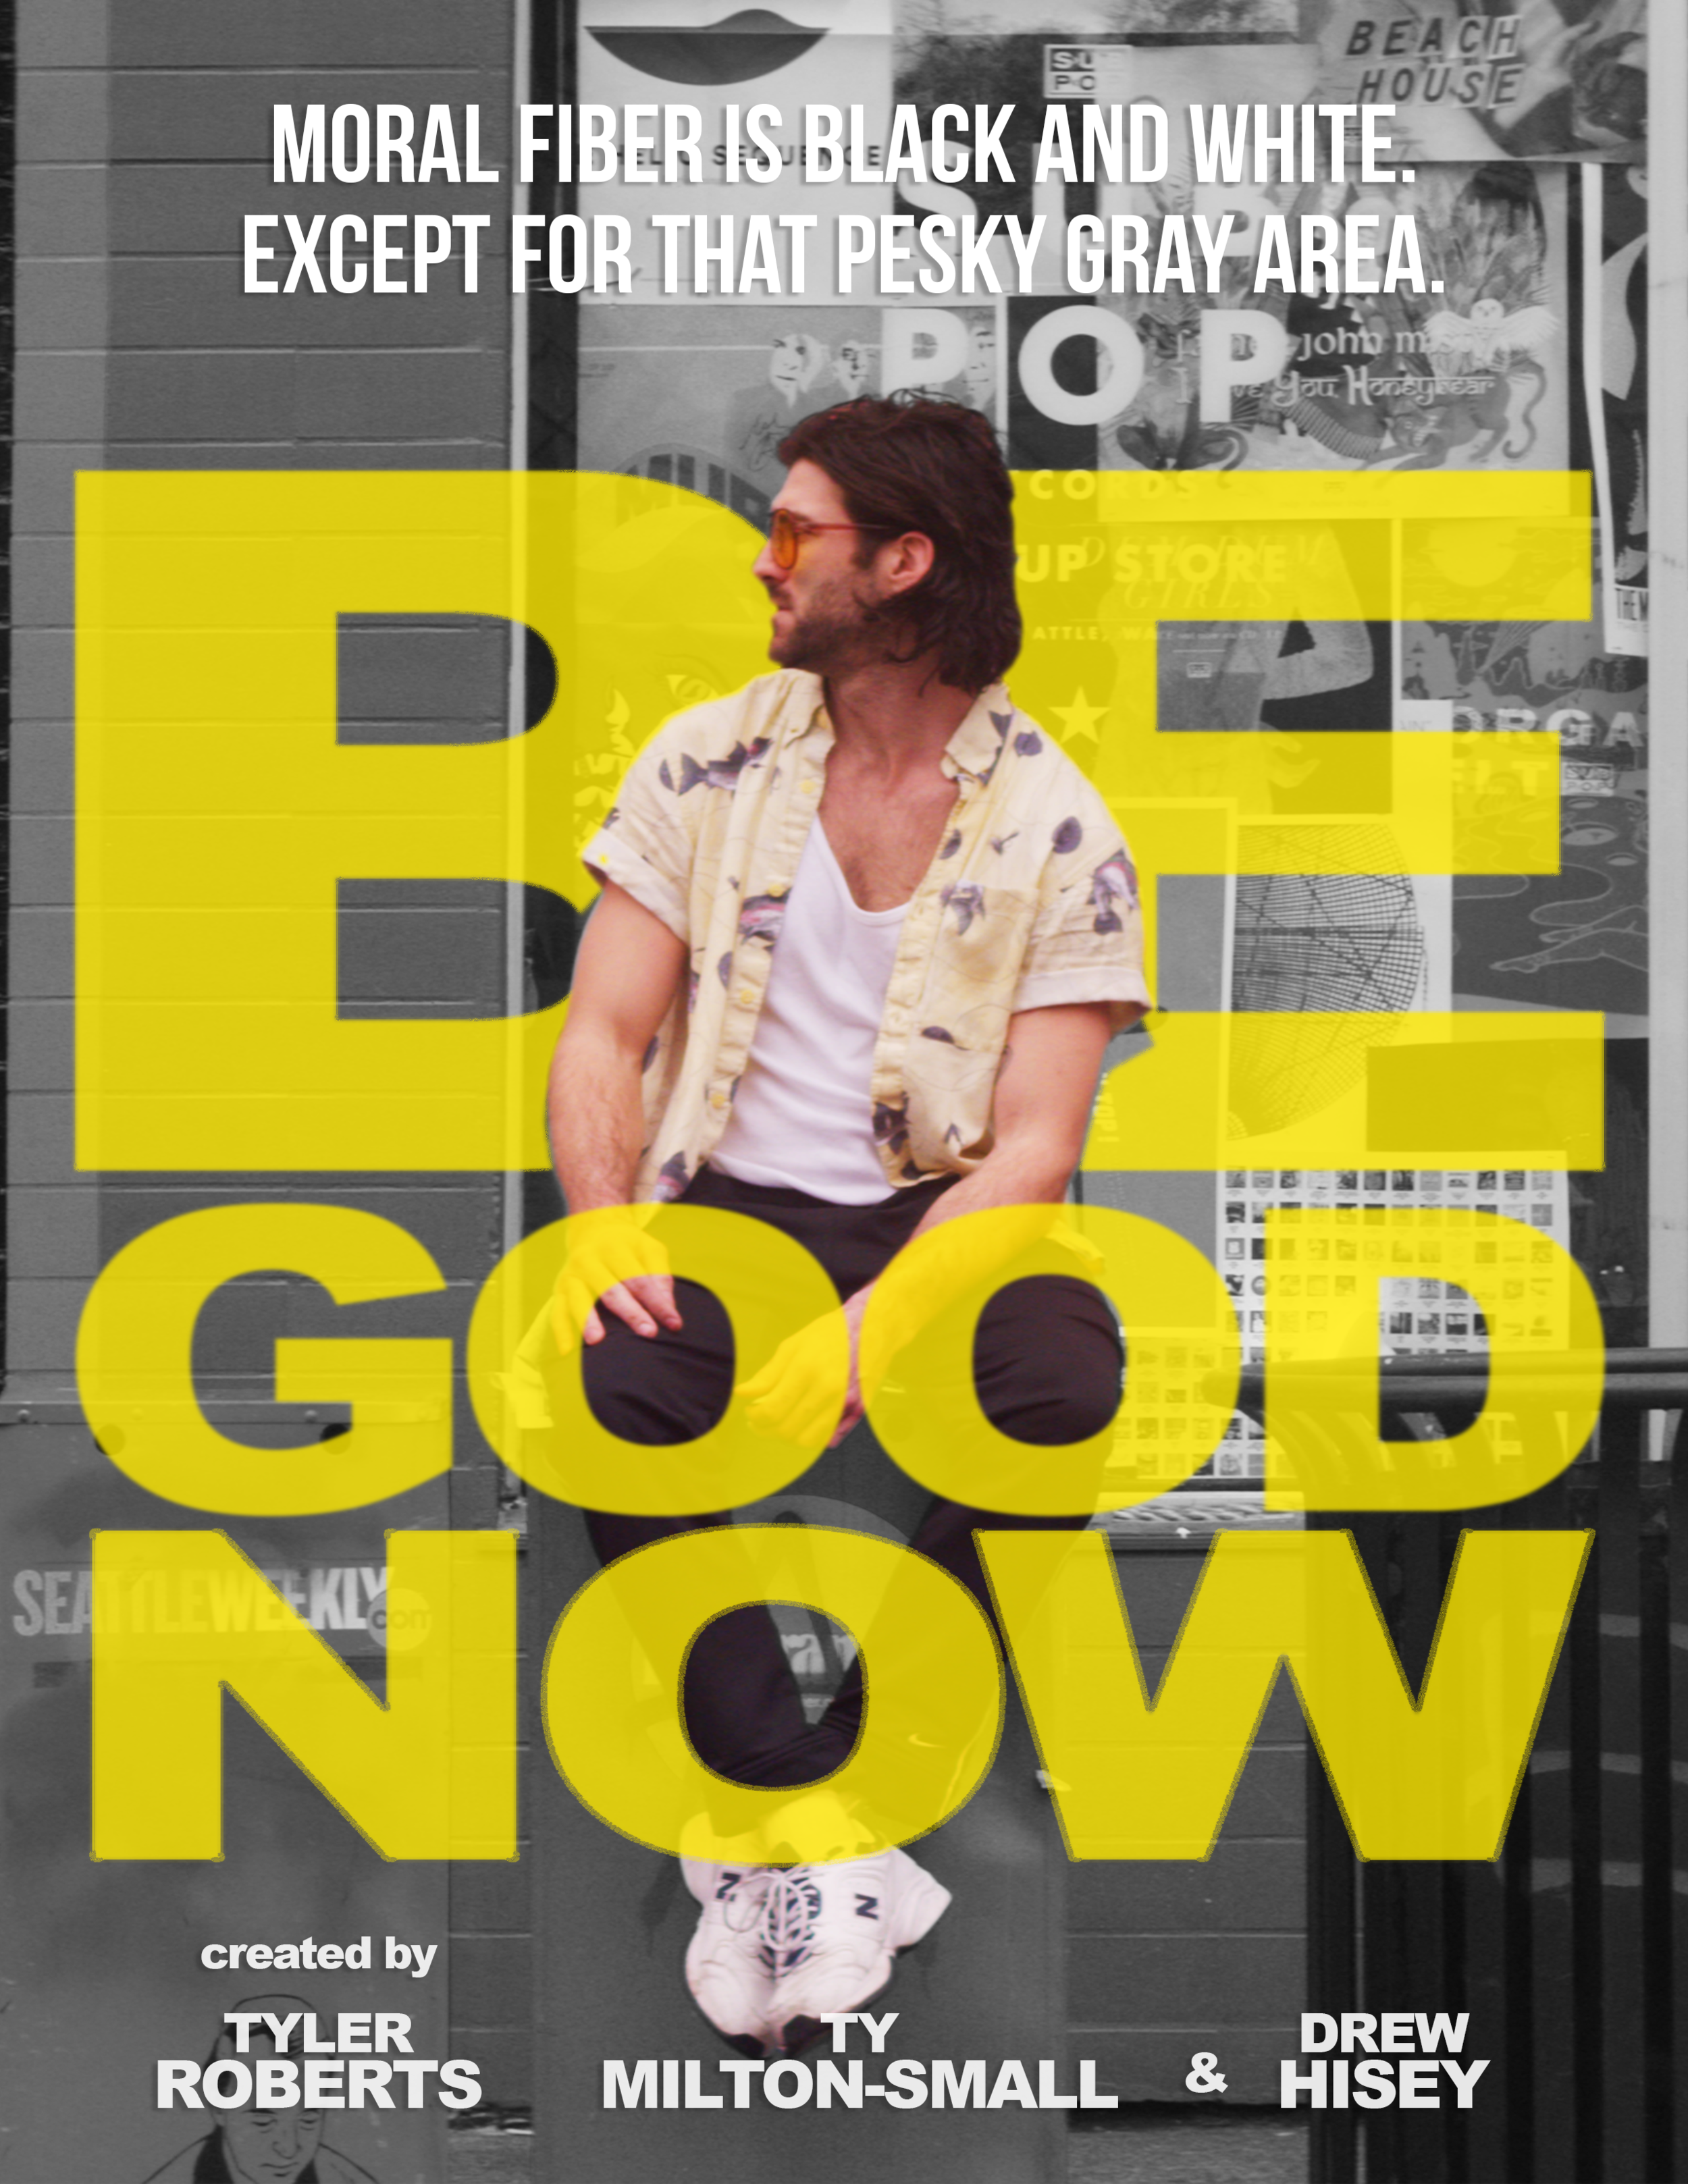 Be Good Now